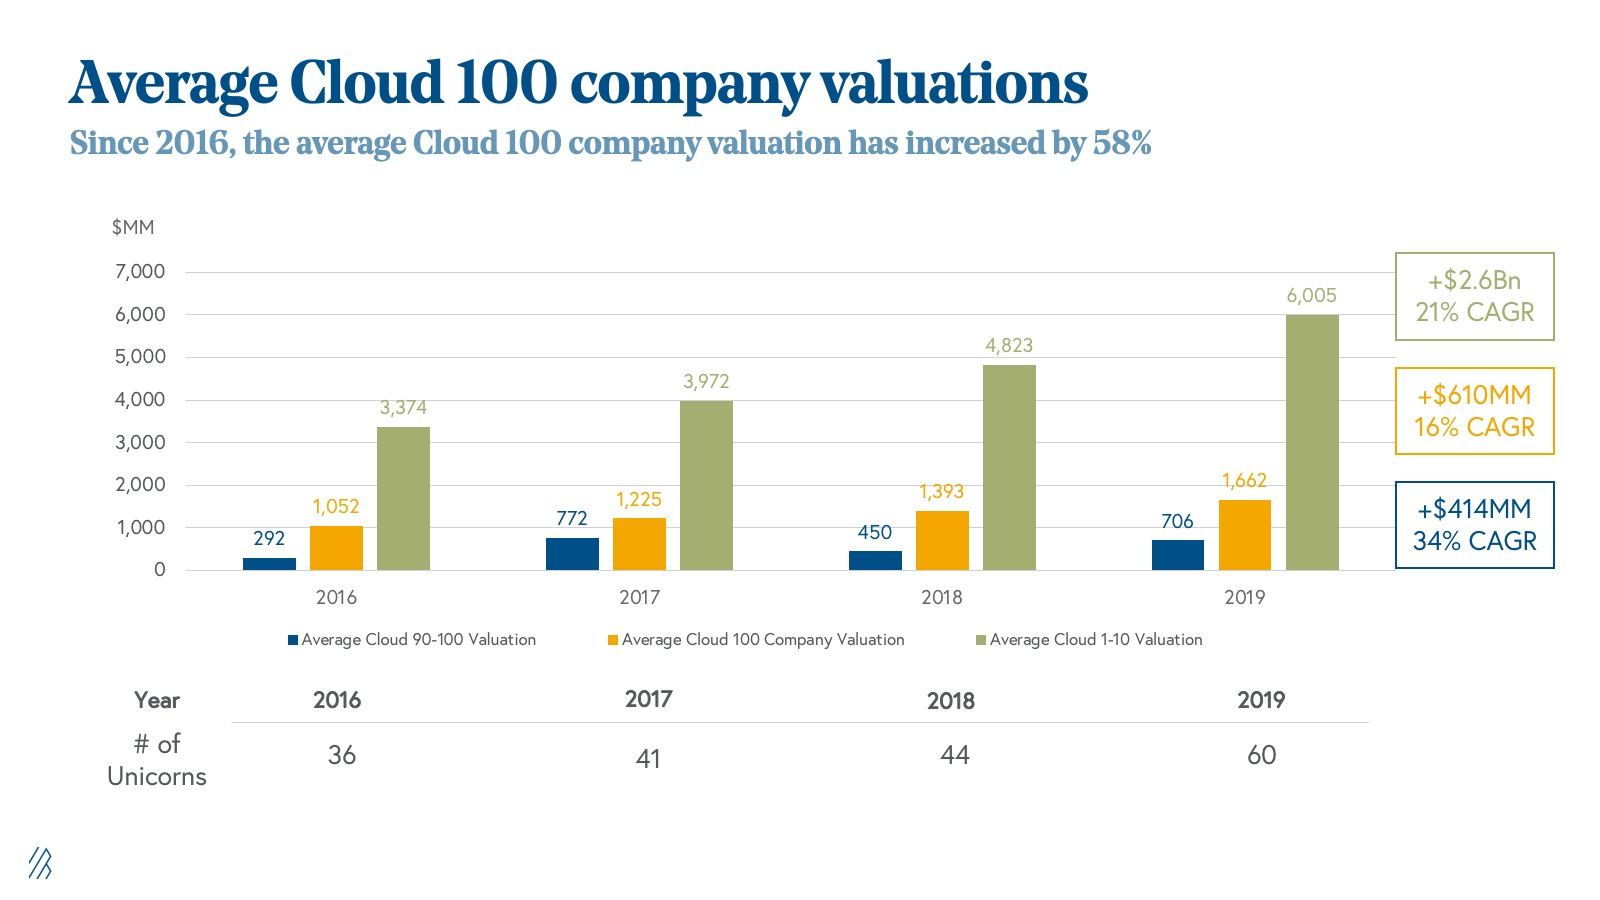 Average Cloud 100 company valuations